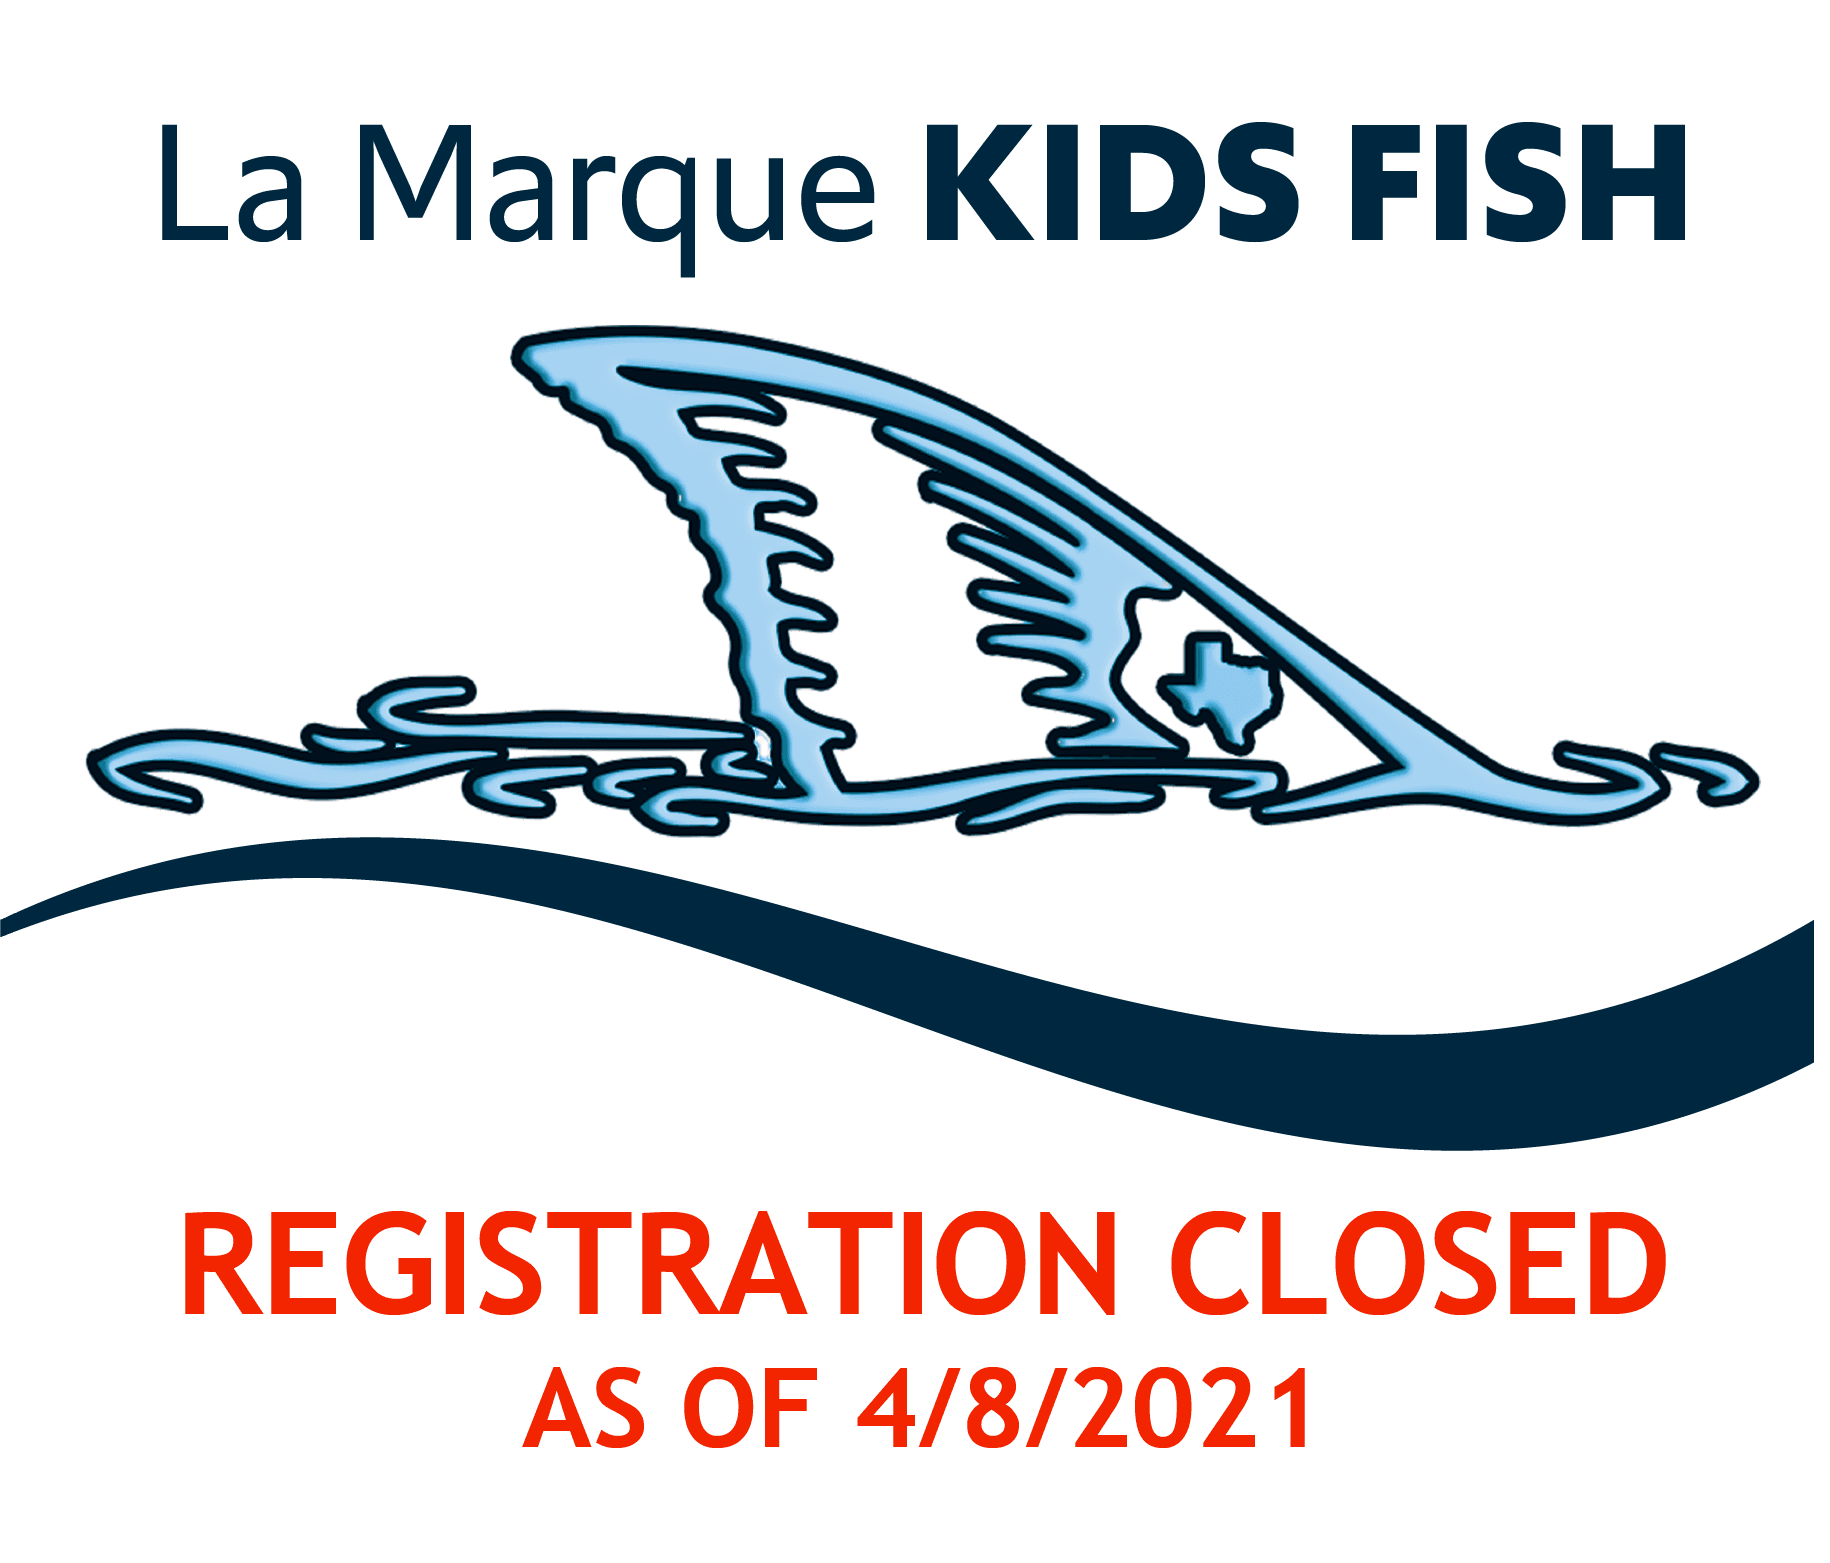 Kids Fish 2021_Registration Closed 482021